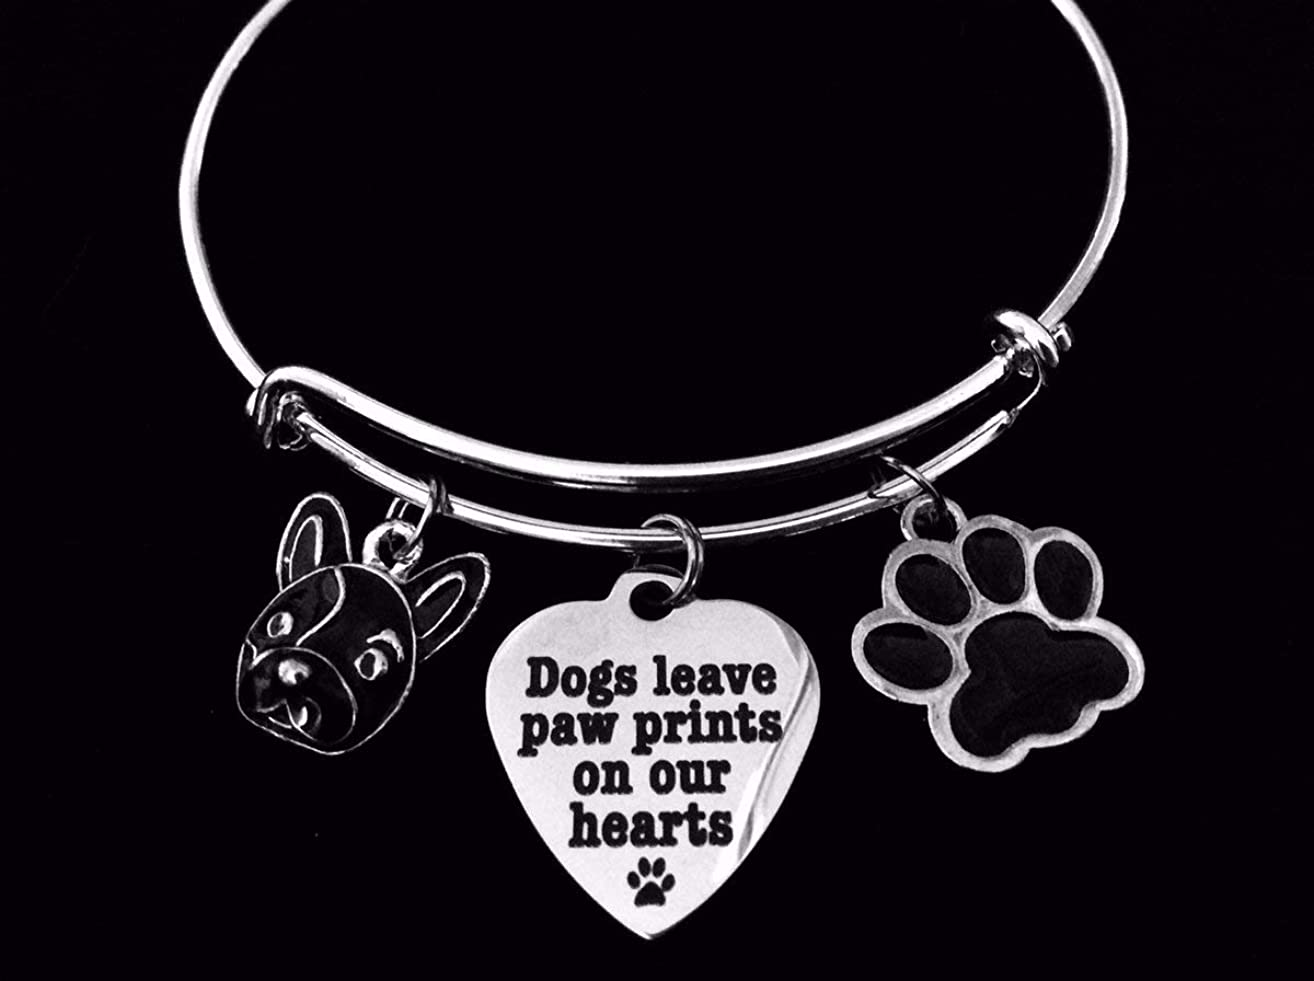 French Bulldog Jewelry Dogs Leave Paw Prints on our Heart Expandable Charm Bracelet Silver Adjustable Wire Bangle Animal Lover One Size Fits All Gift Personalization Customization Options